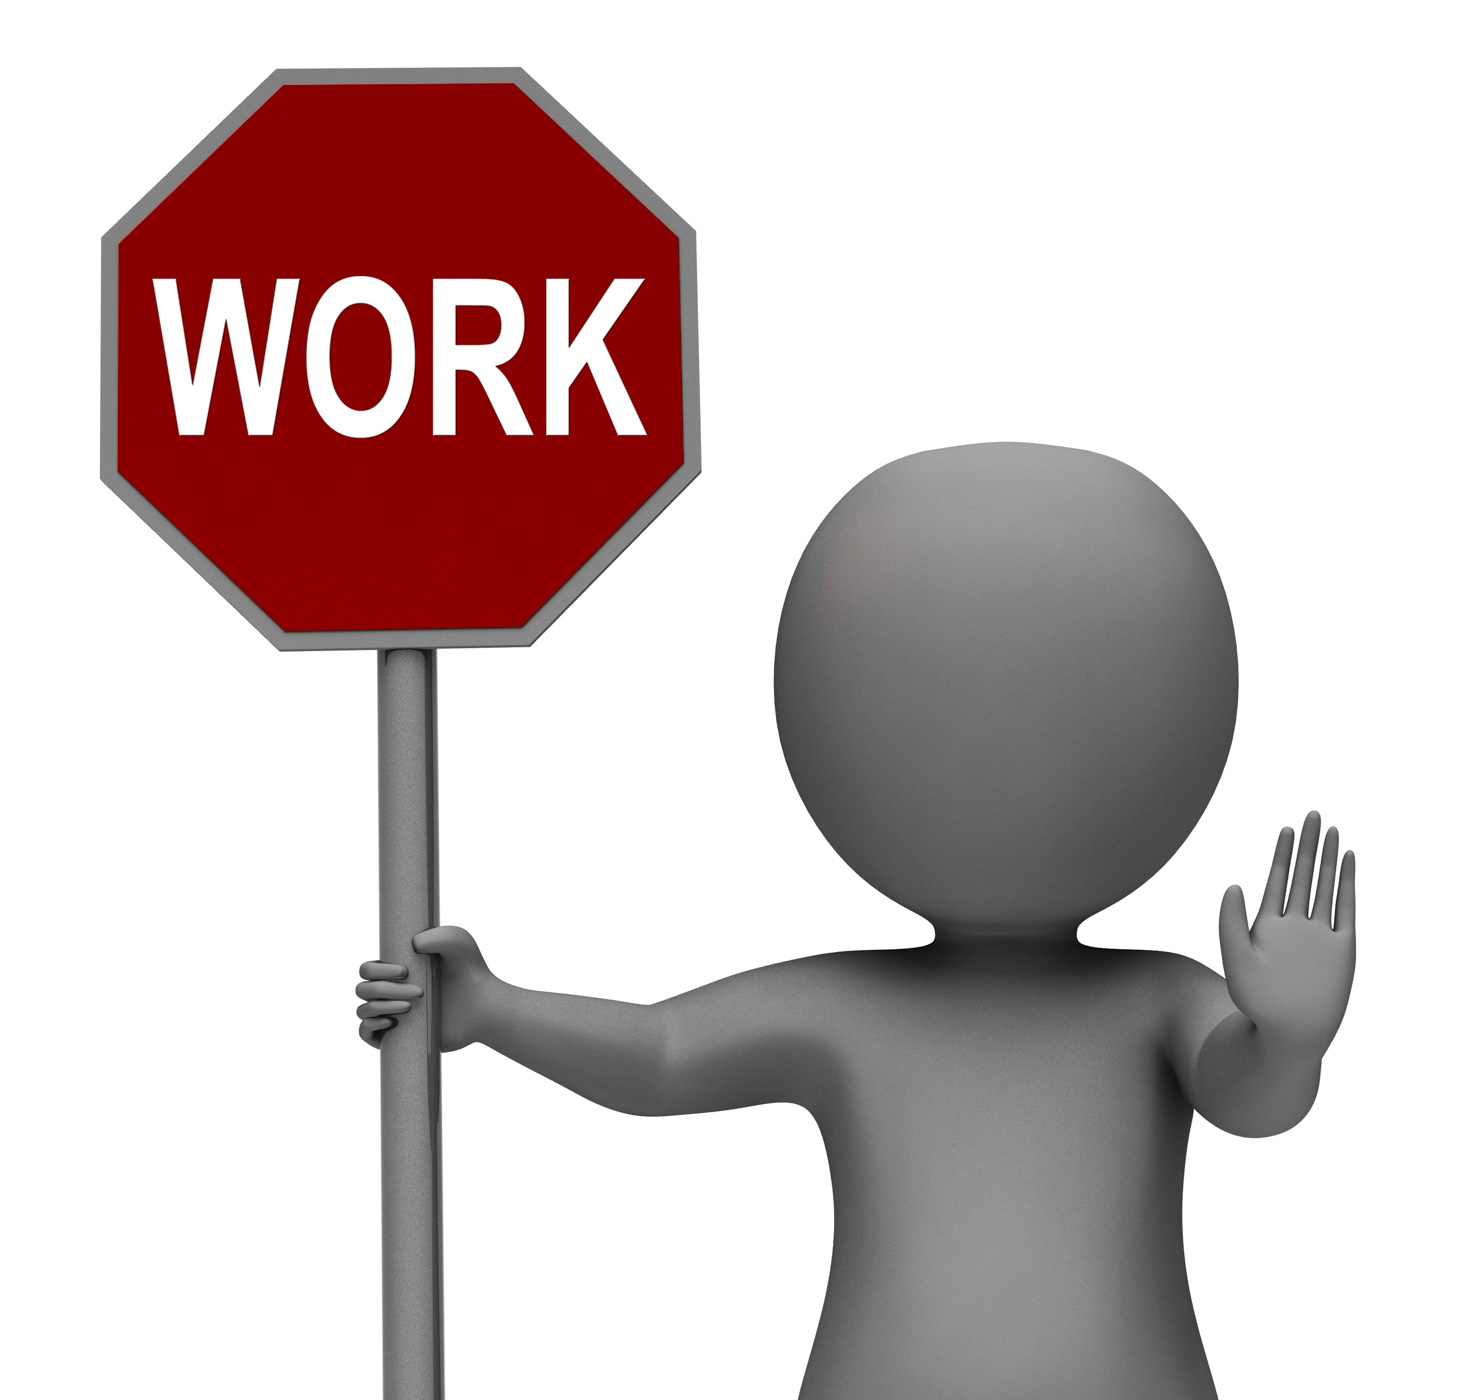 Work stop sign shows stopping difficult working labour photo